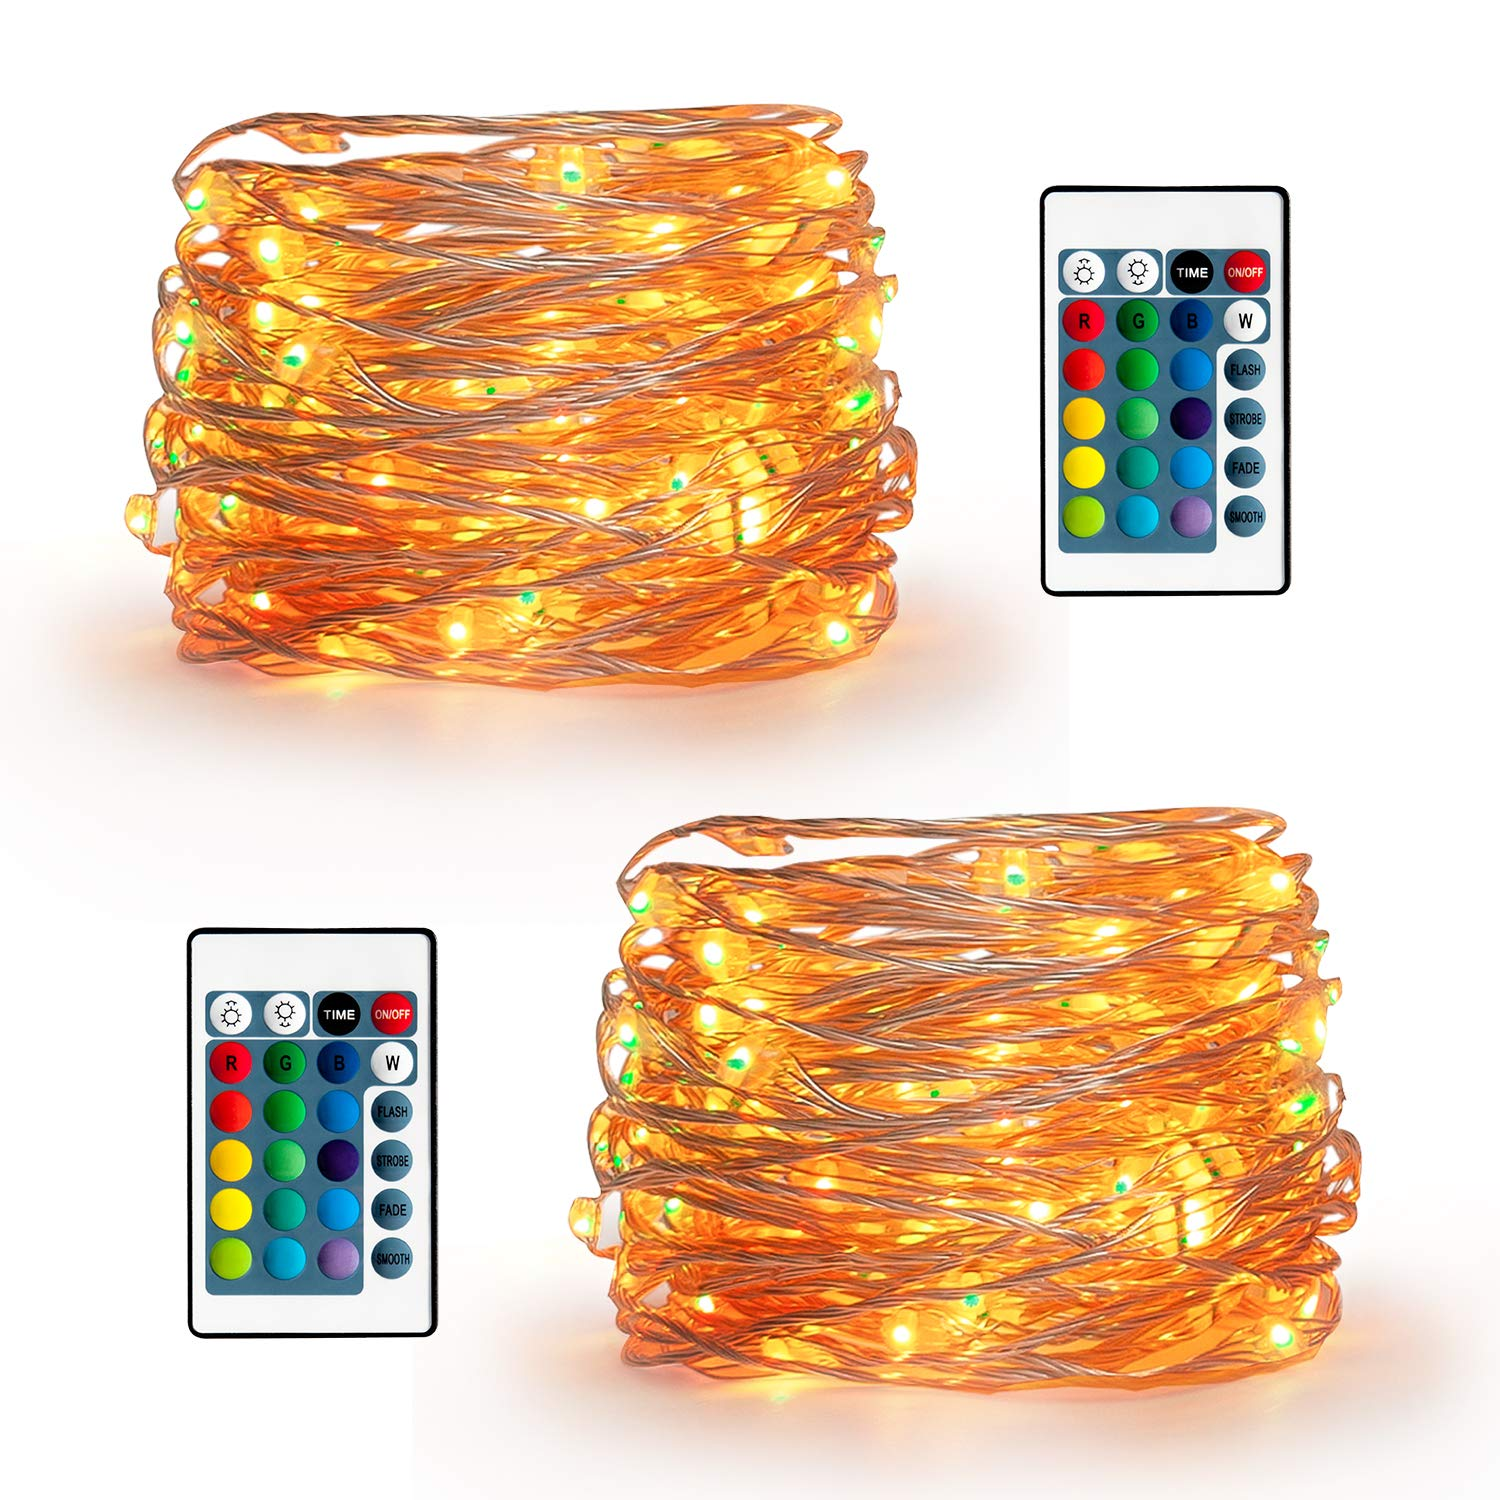 YIHONG 2 Set Fairy Lights USB Plug in String Lights 2 Remotes 16.5ft Firefly Twinkle Lights Bedroom Party Decoration Wedding 16 Vibrant Colors